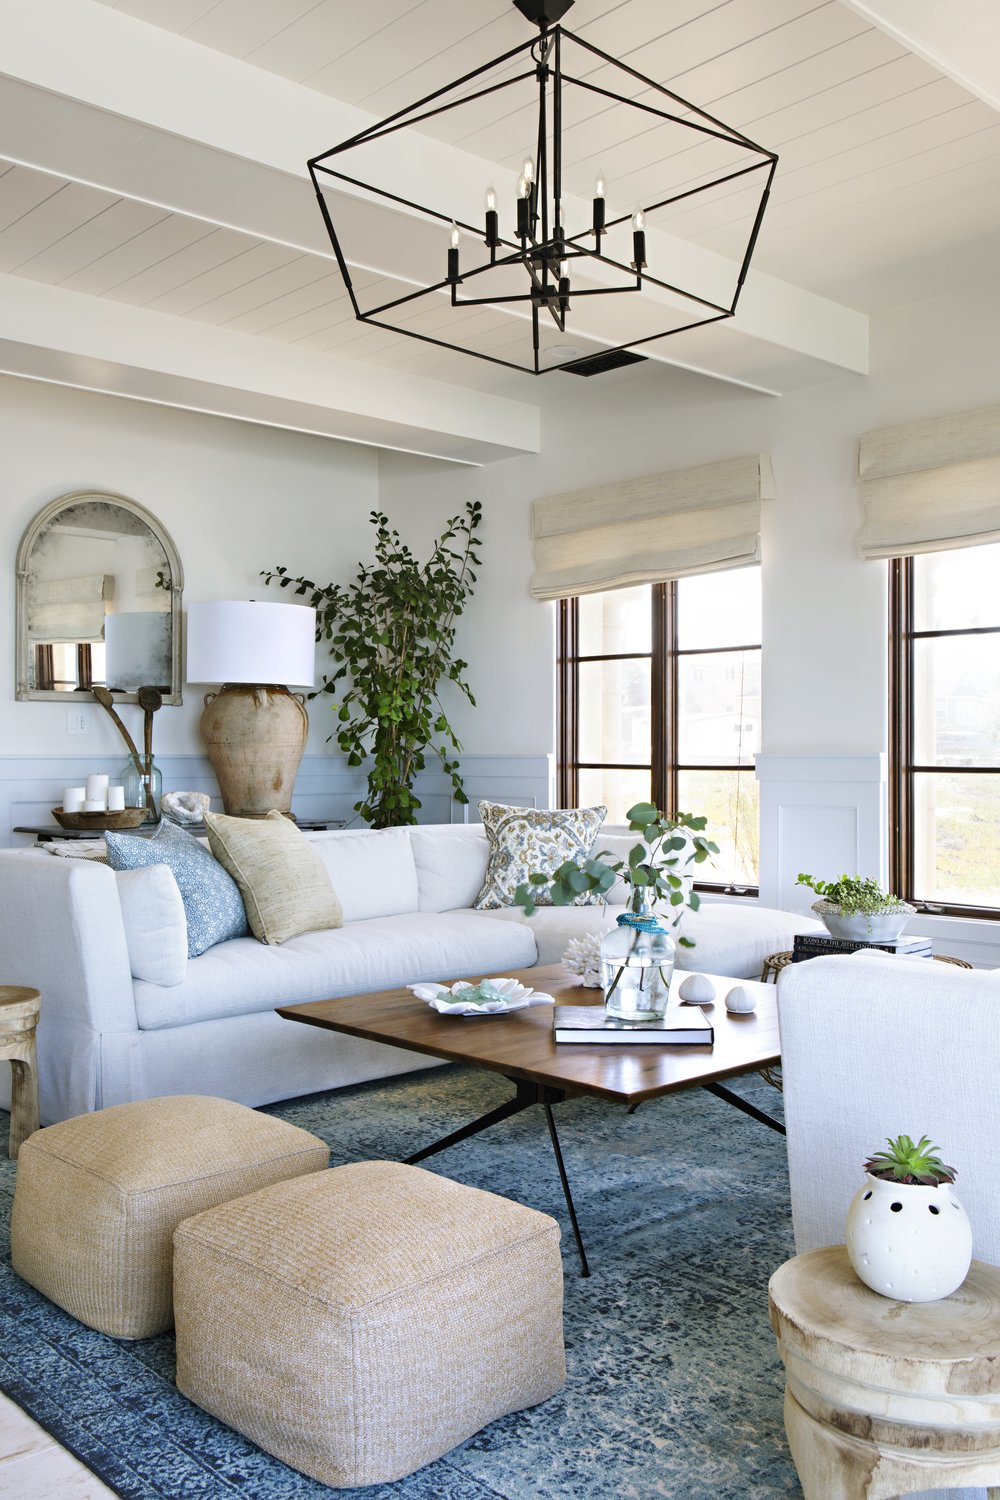 House Tour-Beautiful Seaside Harmony 2.jpg